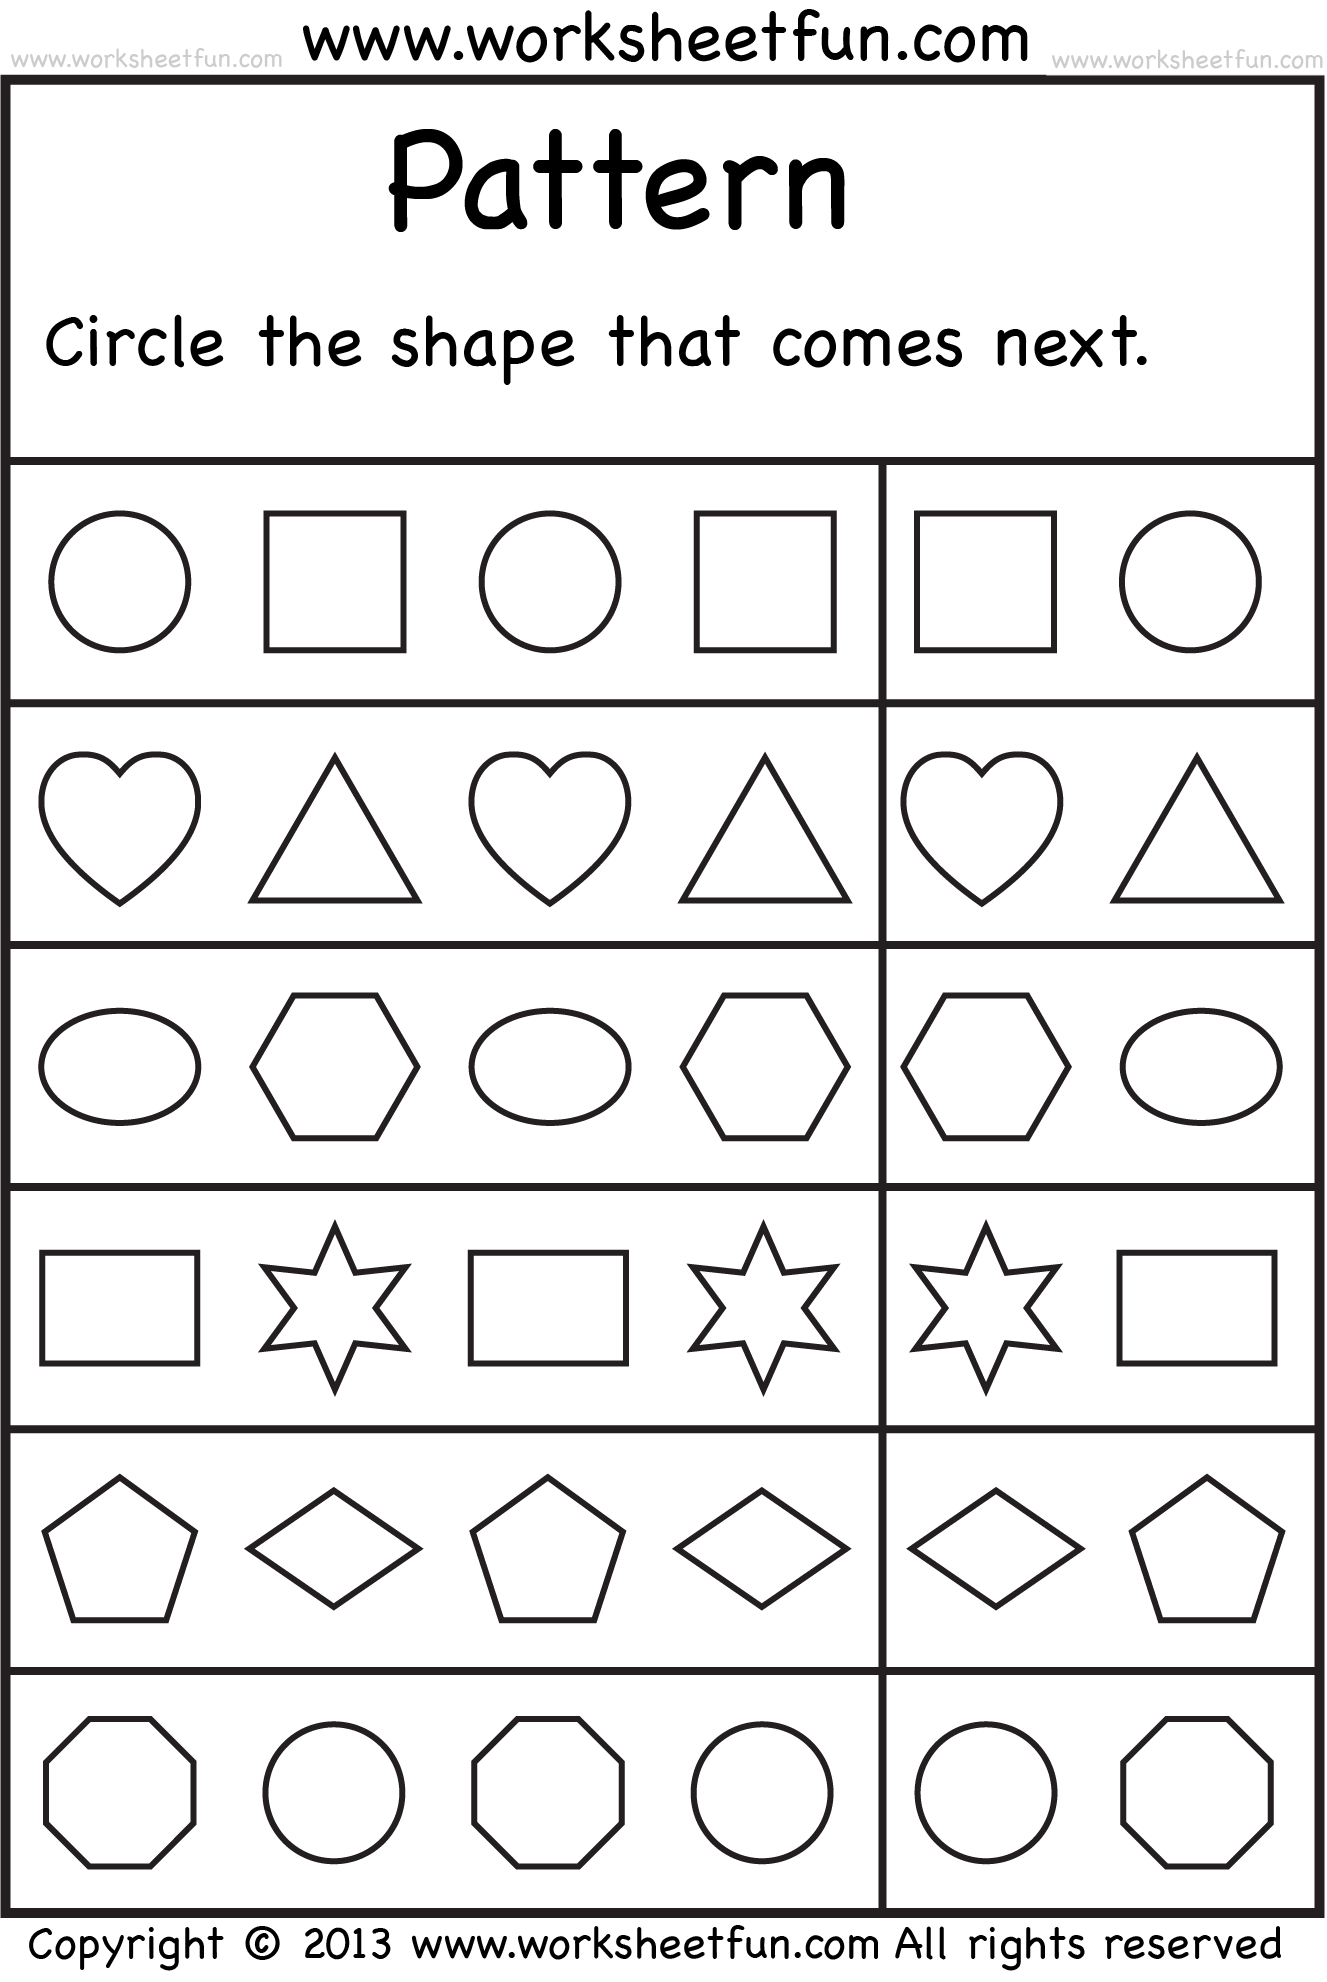 Proatmealus  Remarkable  Images About School Worksheets On Pinterest  Number Words  With Gorgeous  Images About School Worksheets On Pinterest  Number Words Alphabet Worksheets And Free Printable Kindergarten Worksheets With Endearing Abc Order Worksheets For Second Grade Also Subtraction Worksheets Word Problems In Addition Tessellations Worksheets To Color And Label Plant Parts Worksheet As Well As Year  Printable Worksheets Additionally Subject Verb Agreement Worksheets For Kids From Pinterestcom With Proatmealus  Gorgeous  Images About School Worksheets On Pinterest  Number Words  With Endearing  Images About School Worksheets On Pinterest  Number Words Alphabet Worksheets And Free Printable Kindergarten Worksheets And Remarkable Abc Order Worksheets For Second Grade Also Subtraction Worksheets Word Problems In Addition Tessellations Worksheets To Color From Pinterestcom